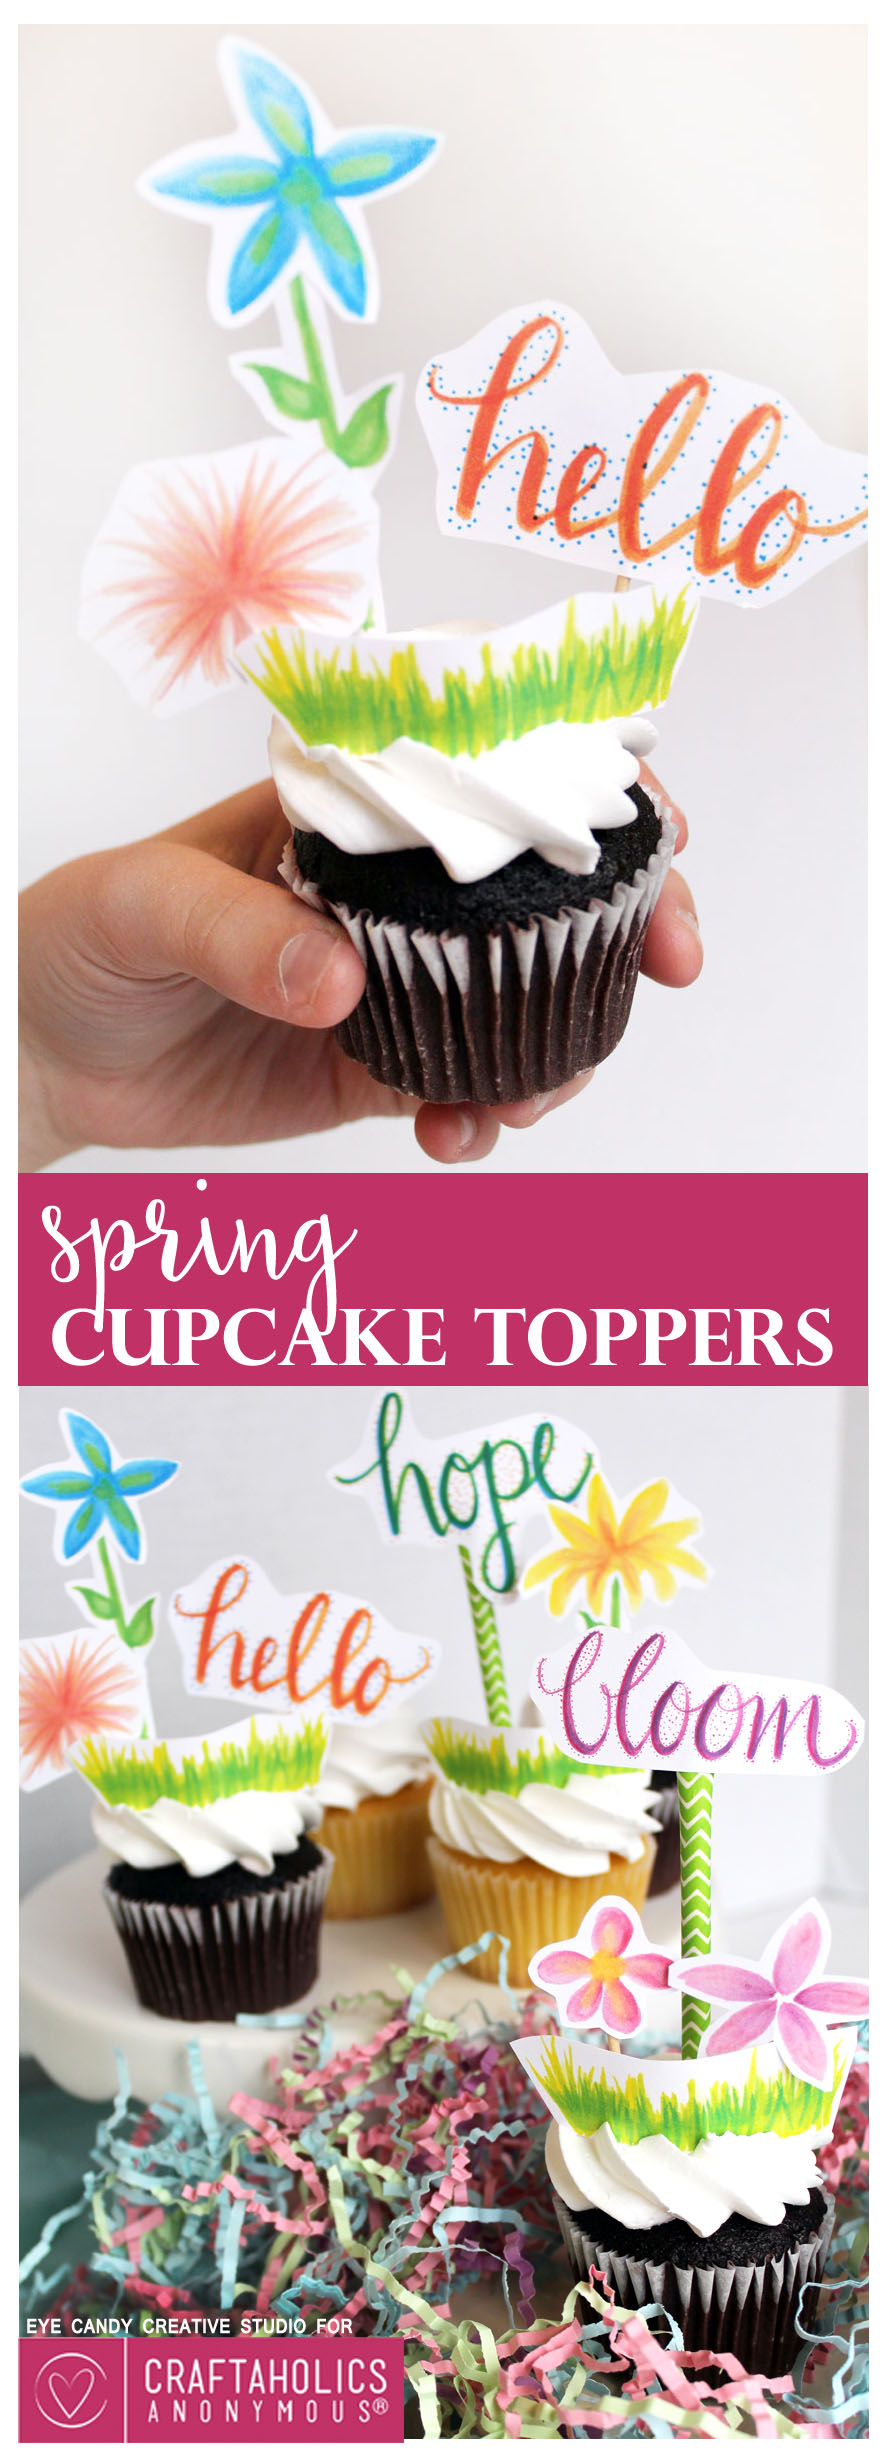 Free Printable Spring Cupcake Toppers :: So colorful and cute! Perfect for a garden party.